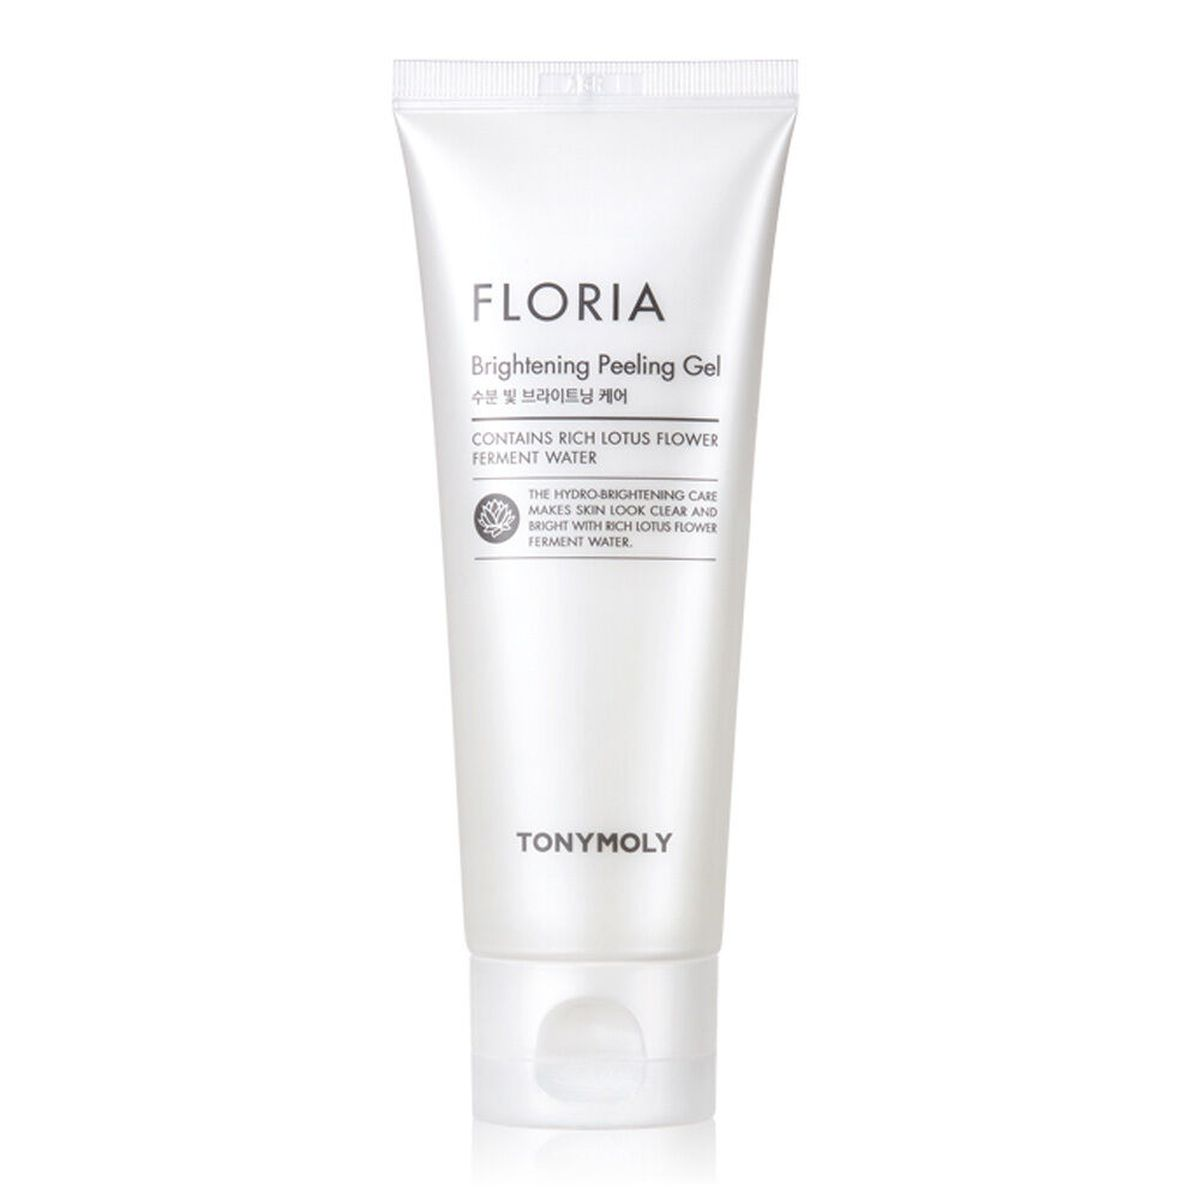 Пилинг-скатка для лица Tony Moly Floria Brightening Peeling Gel - 100 мл